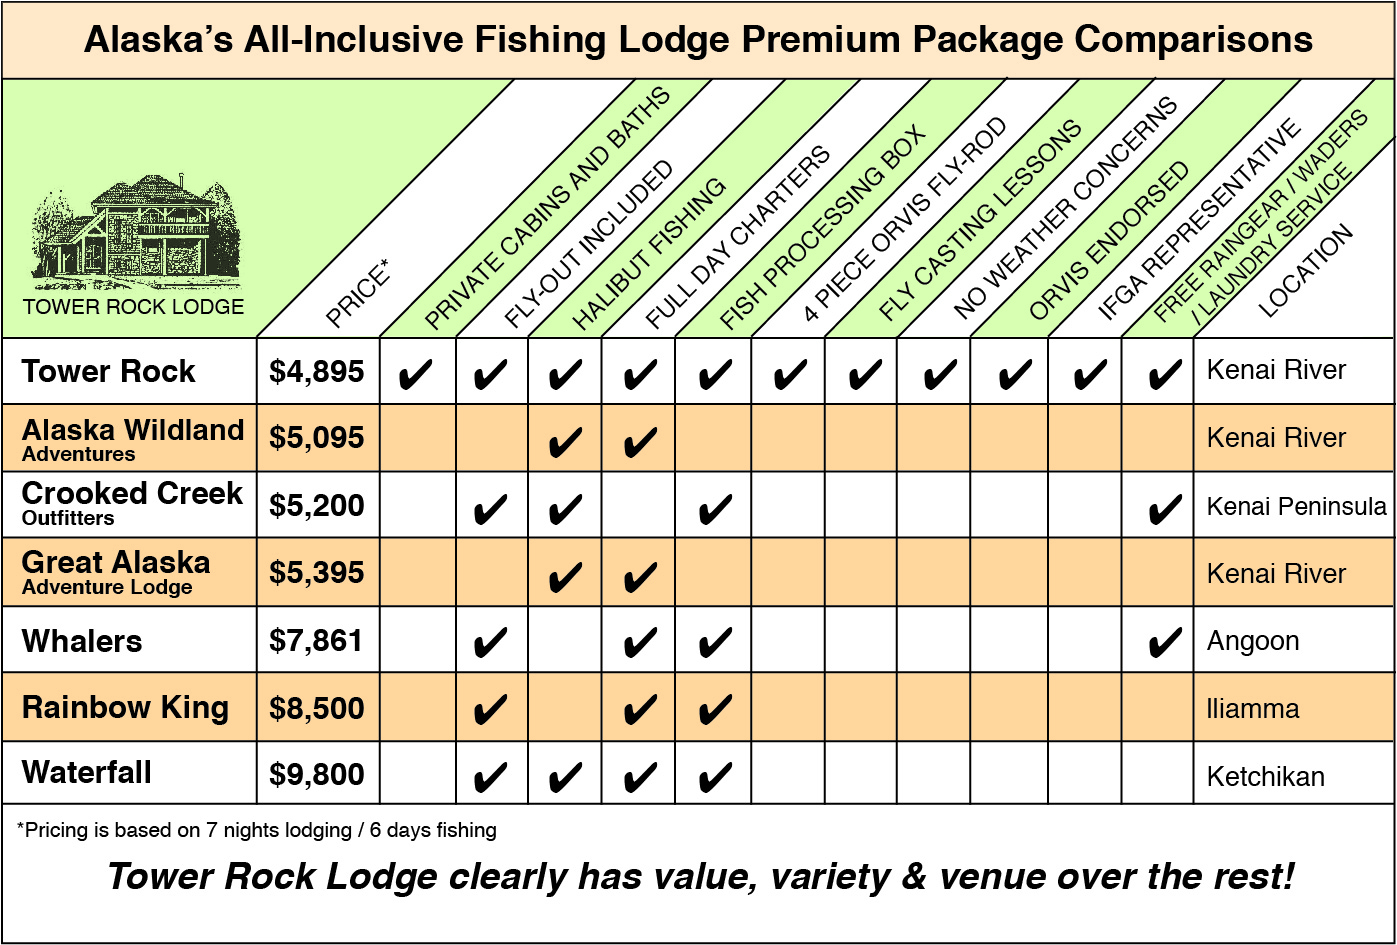 Compare Tower Rock Lodge to other Alaska Fishing Lodges